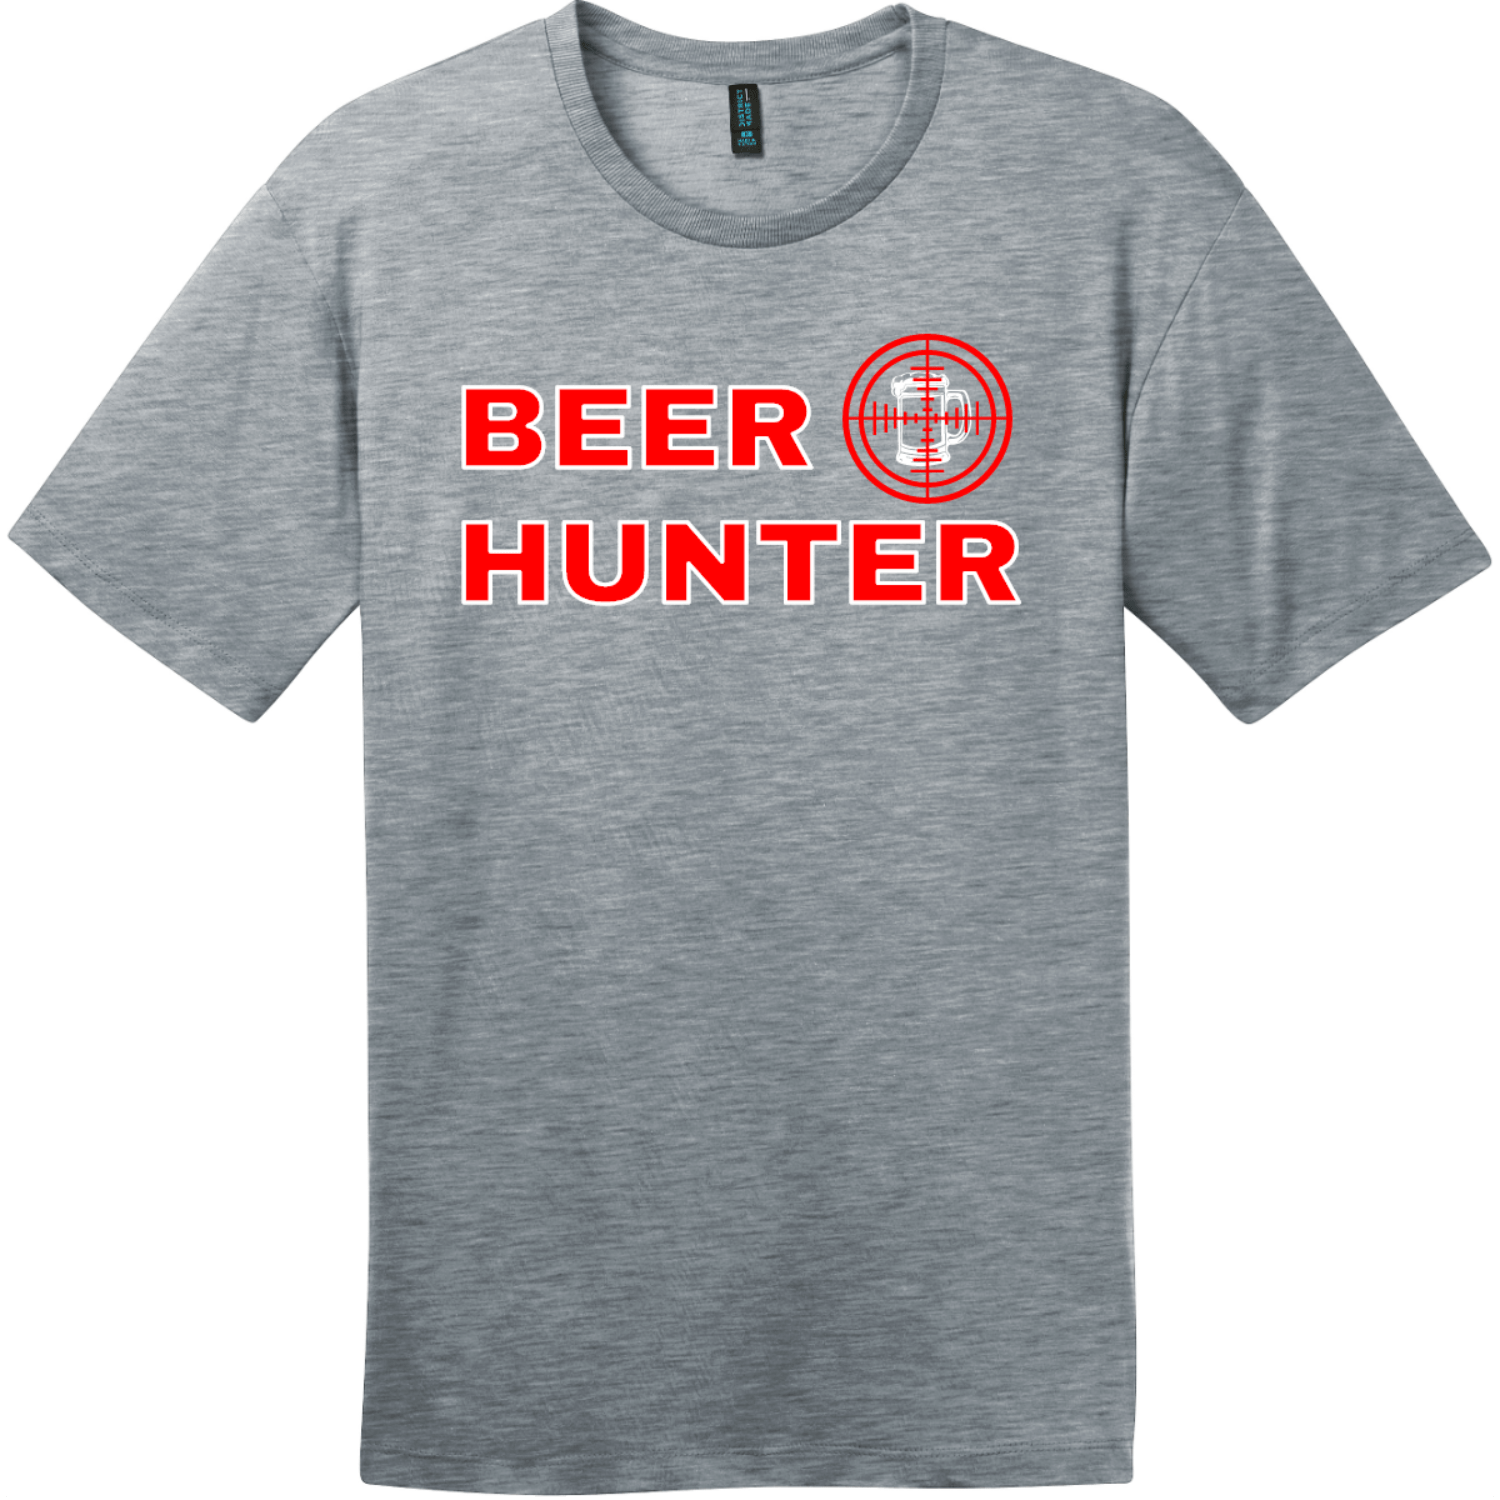 Beer Hunter Funny Beer T-Shirt Heathered Steel District Perfect Weight Tee DT104